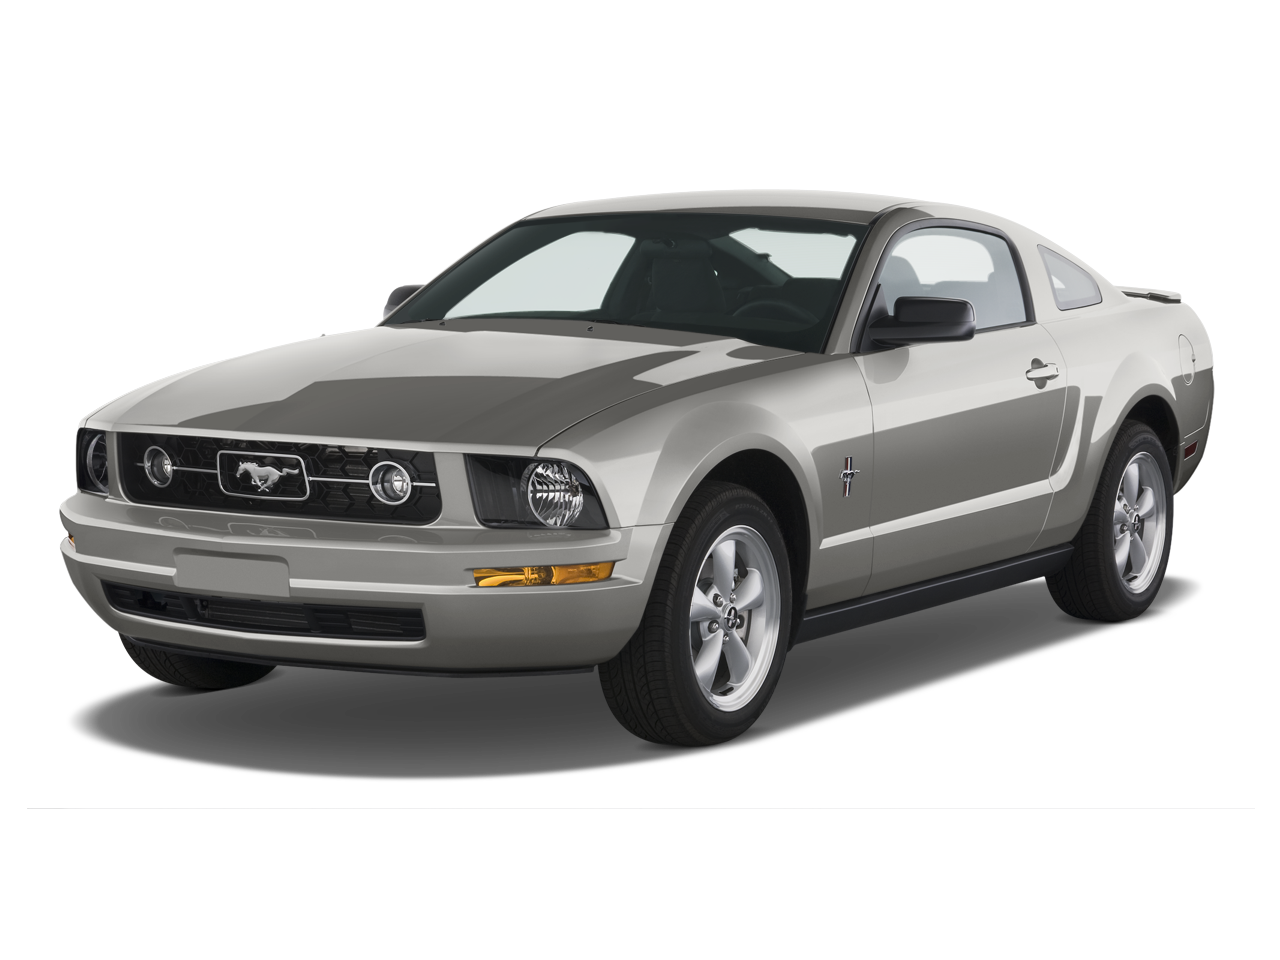 Ford Mustang V 2004 - 2009 Coupe #4